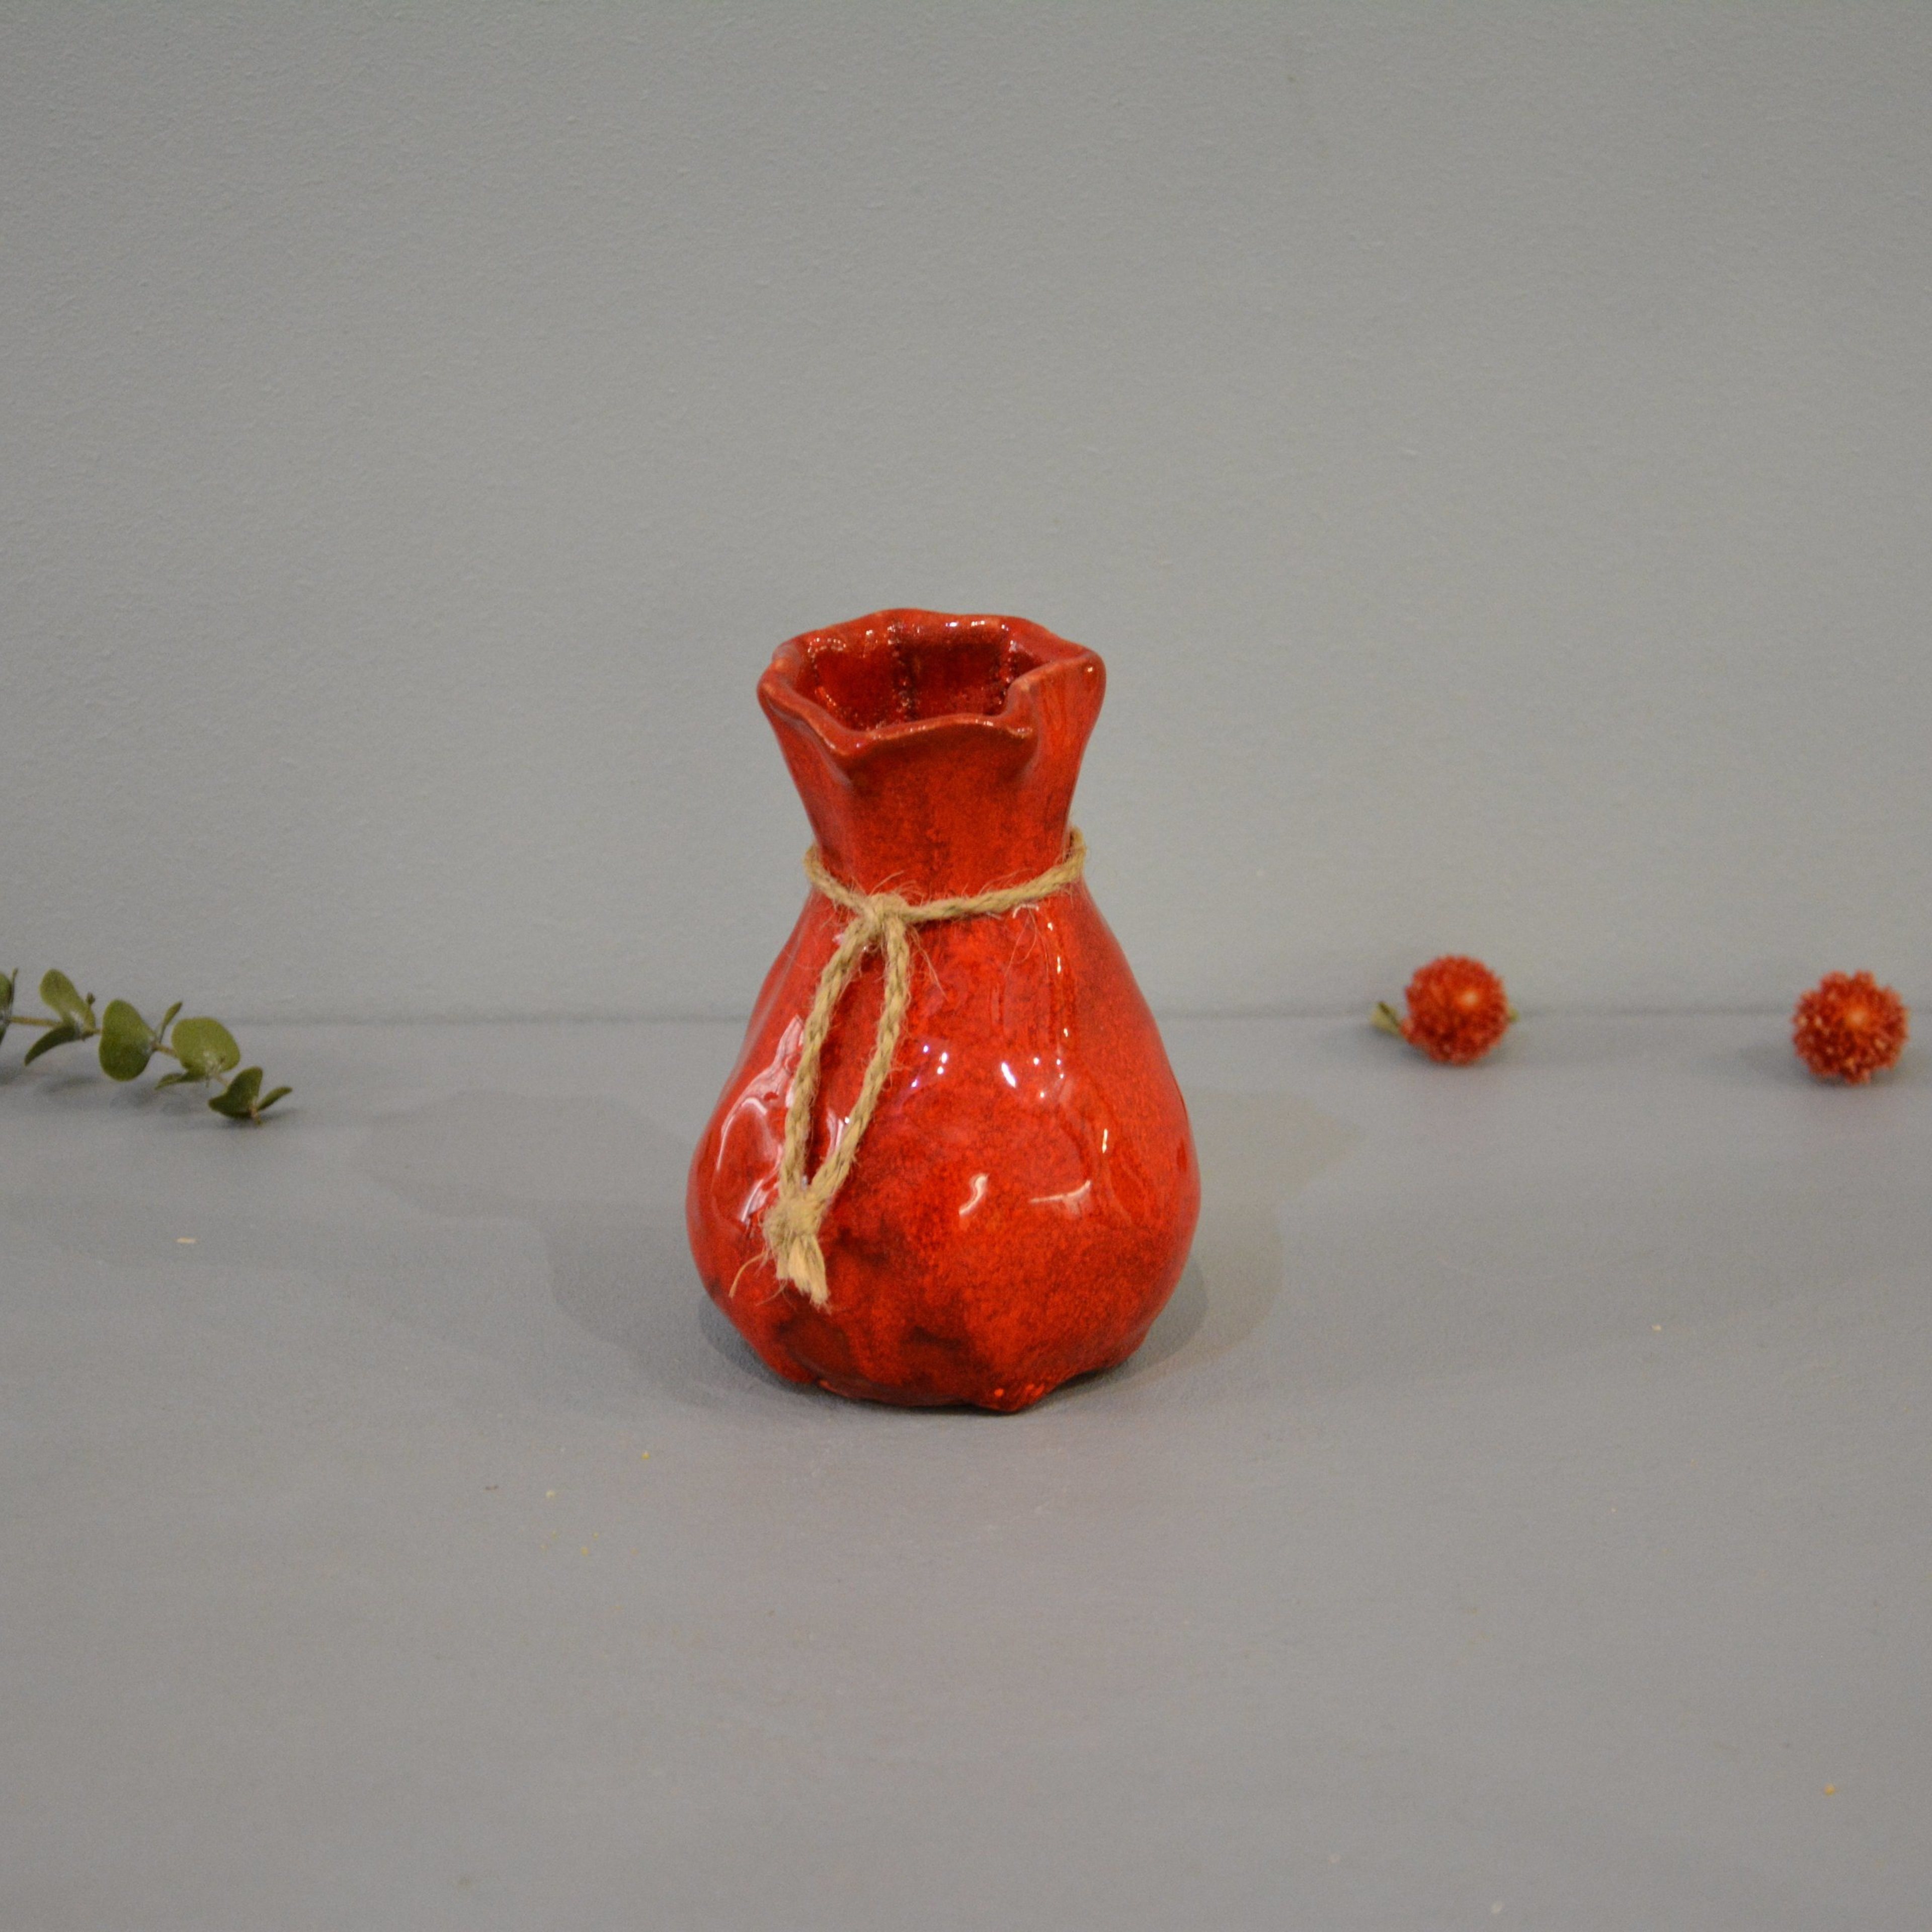 Candle vase «Red Bagful», height - 12 cm, color - red. Photo 1436-3840-3840.